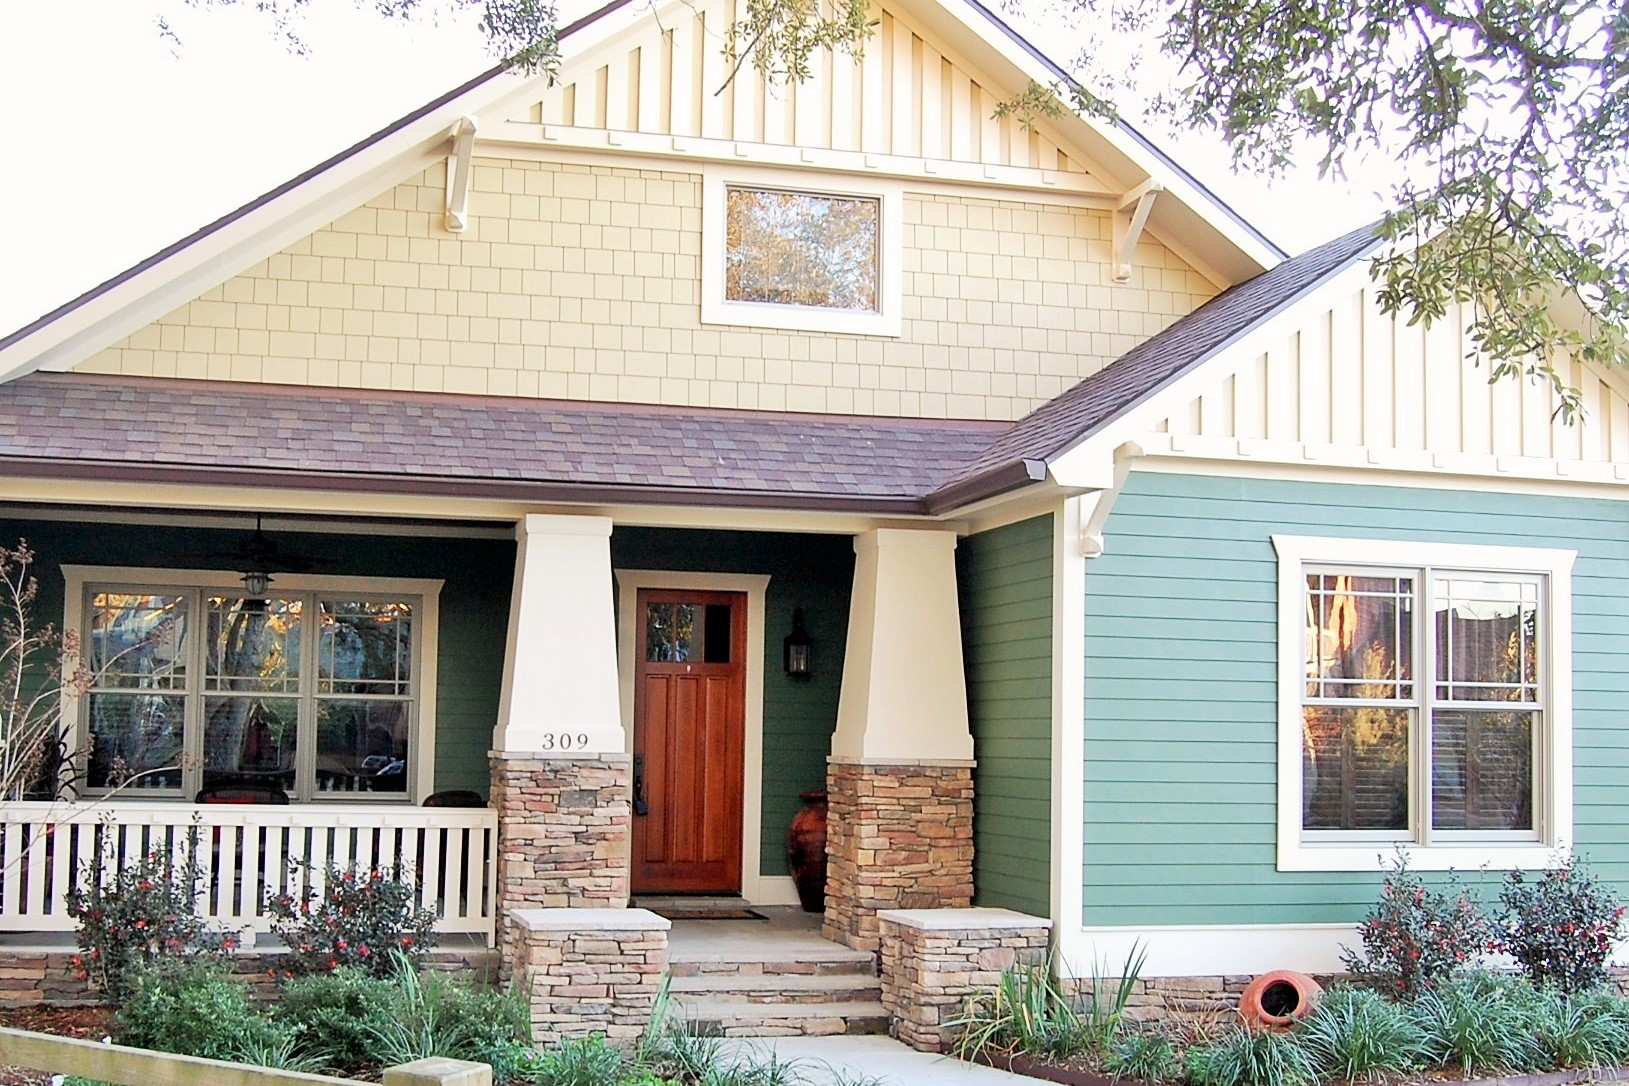 Olde Towne at Millcreek | Architecture and Design - Olde ... on